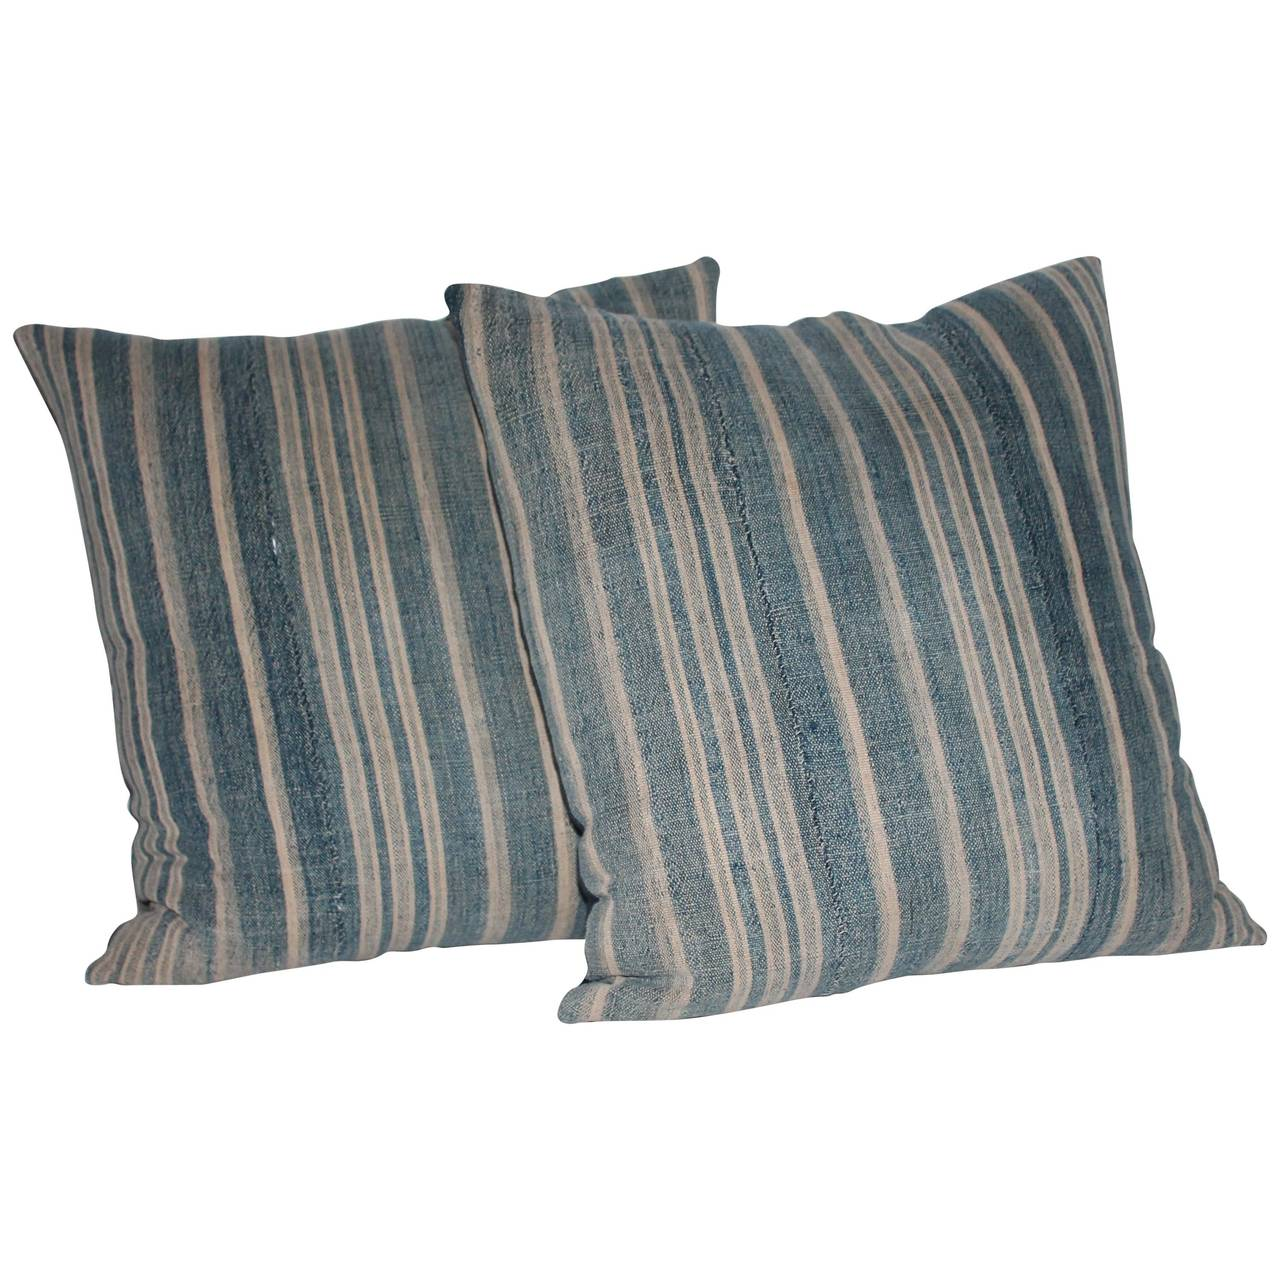 Pair of Muted Early 19th Century Blue Linen Ticking Pillows at 1stdibs